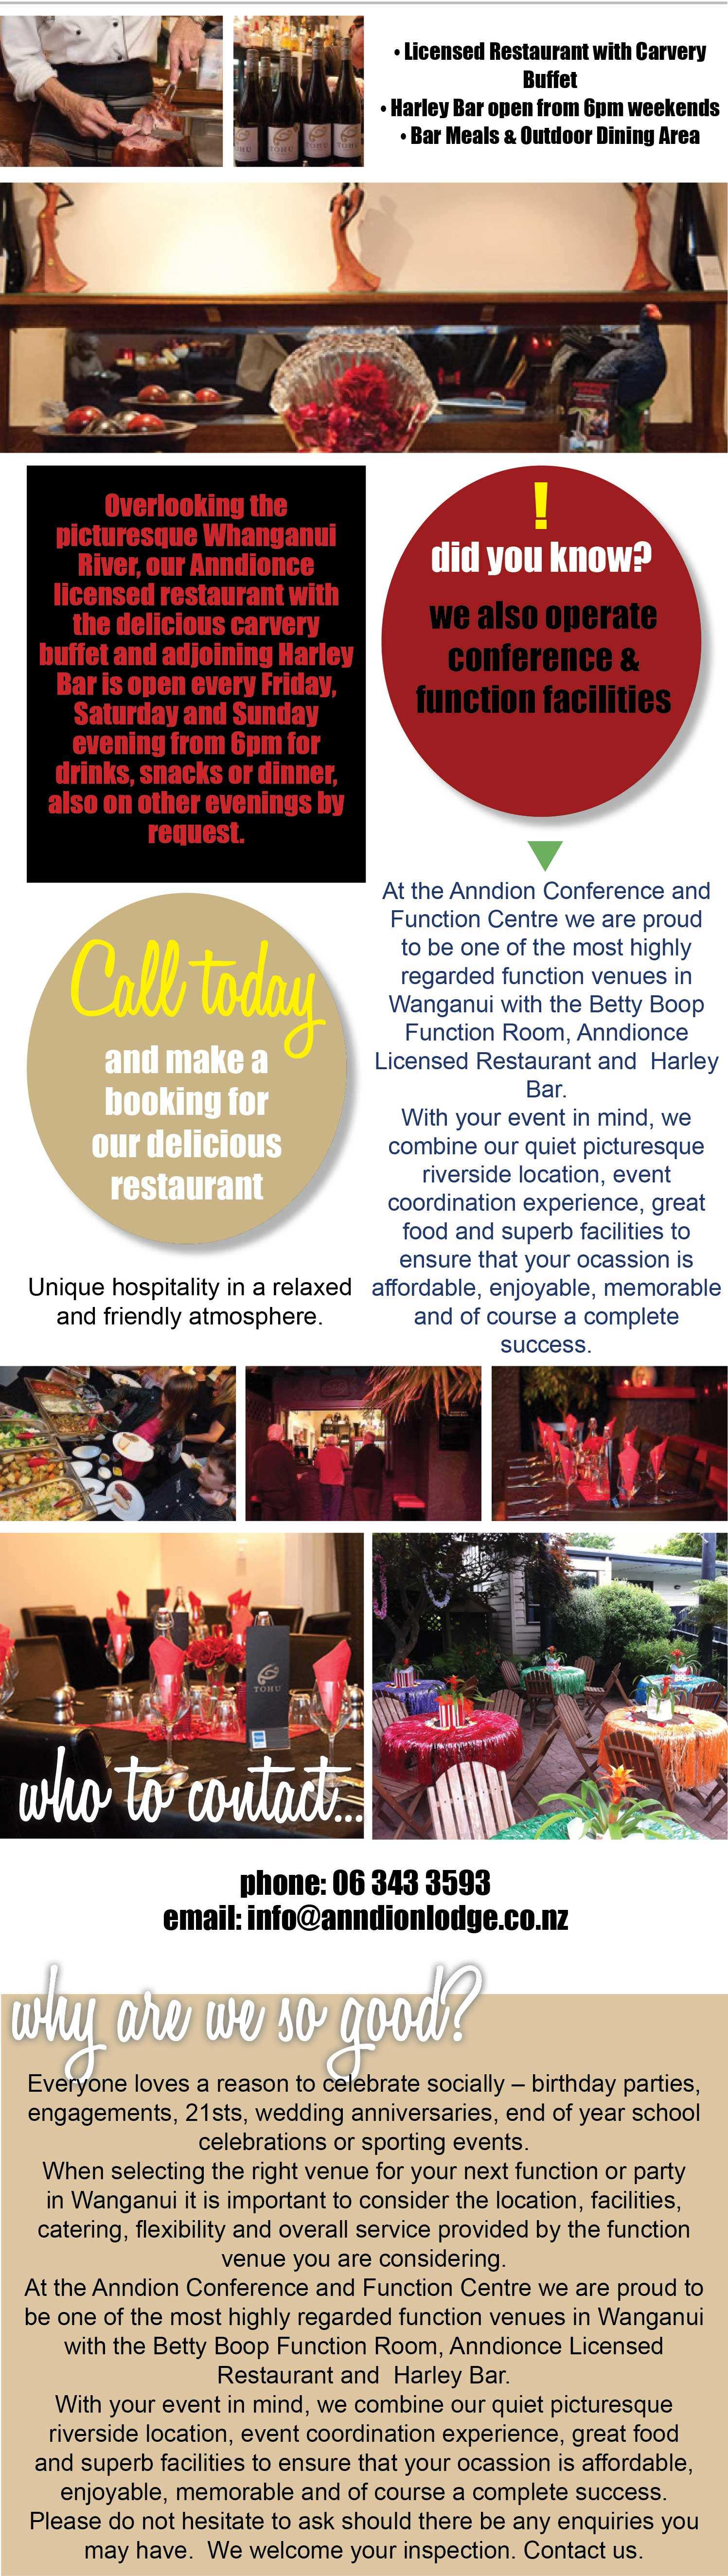 Anndionce Restaurant and Harley Bar, licensed restaurant, carvery buffet, open 6pm weekends, other evenings by request, bar meals, indoor & outdoor dining area, function and conference facilities